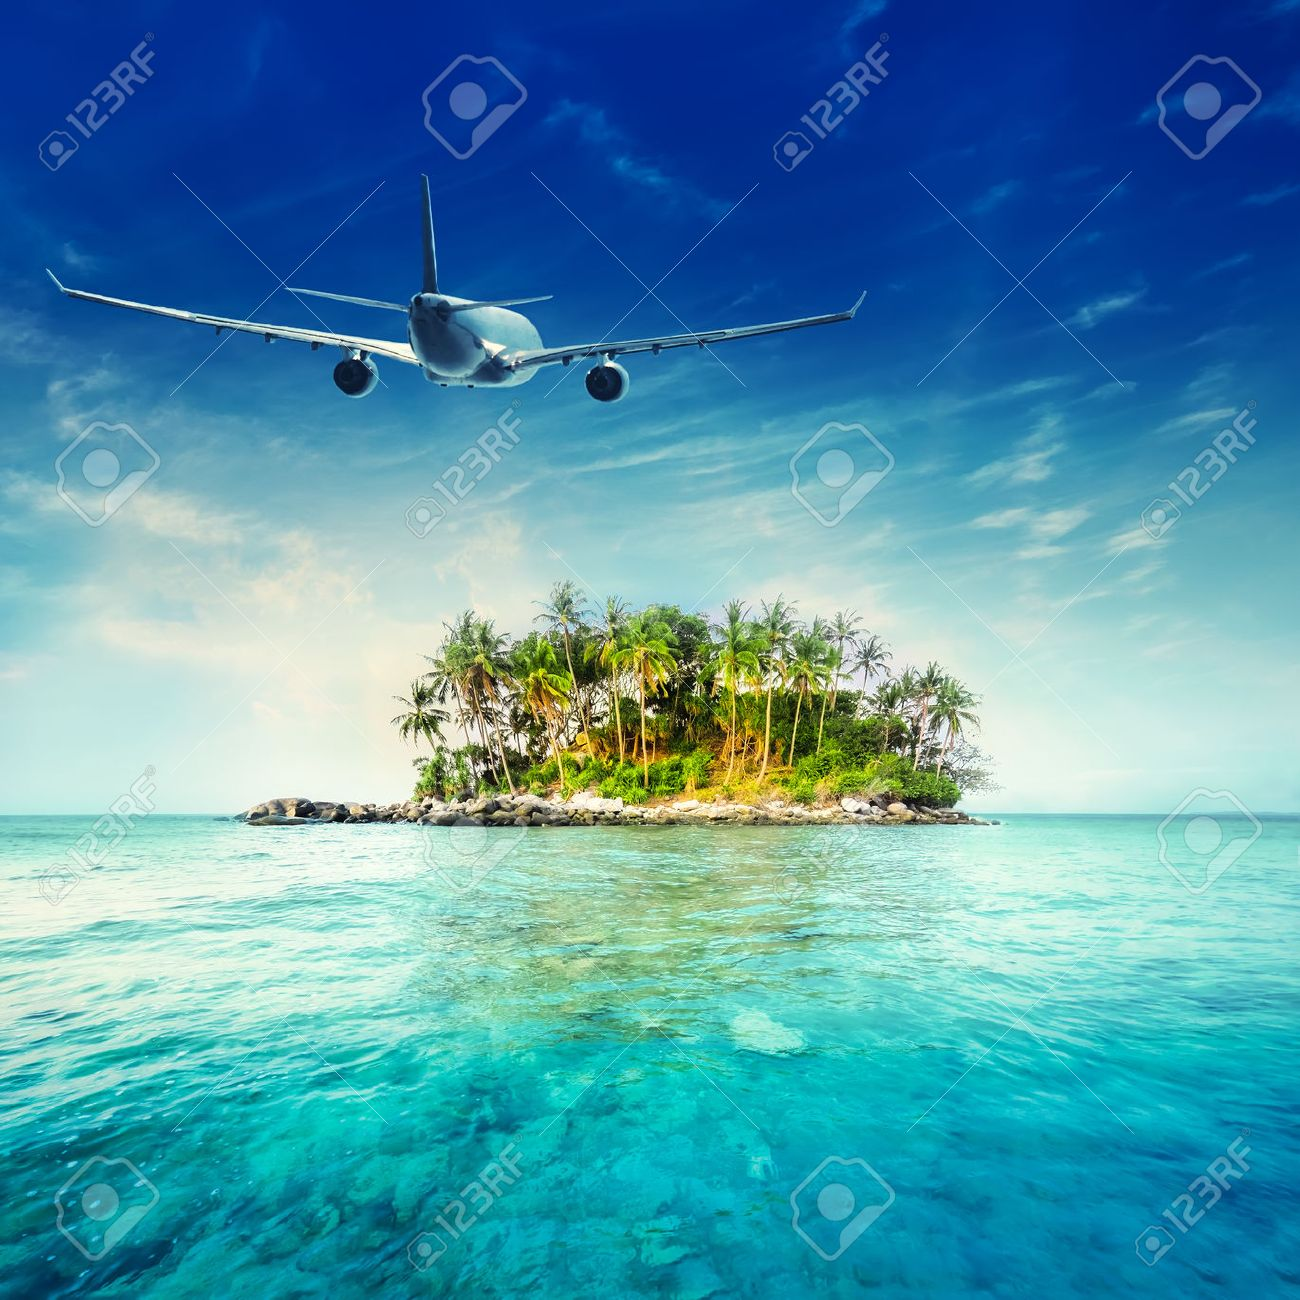 Airplane flying over amazing ocean landscape with tropical island. Thailand travel destinations - 53750178